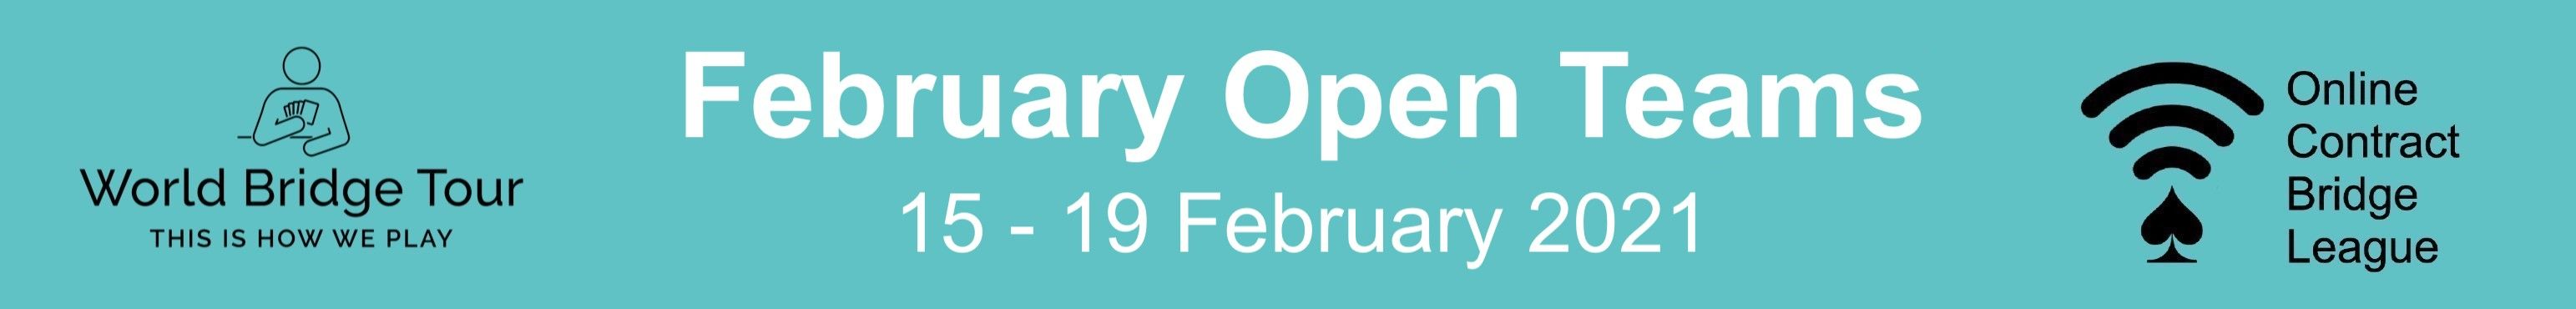 OCBL February Open Teams banner image, from 1th to 5th of February. Click here to go to the results website.